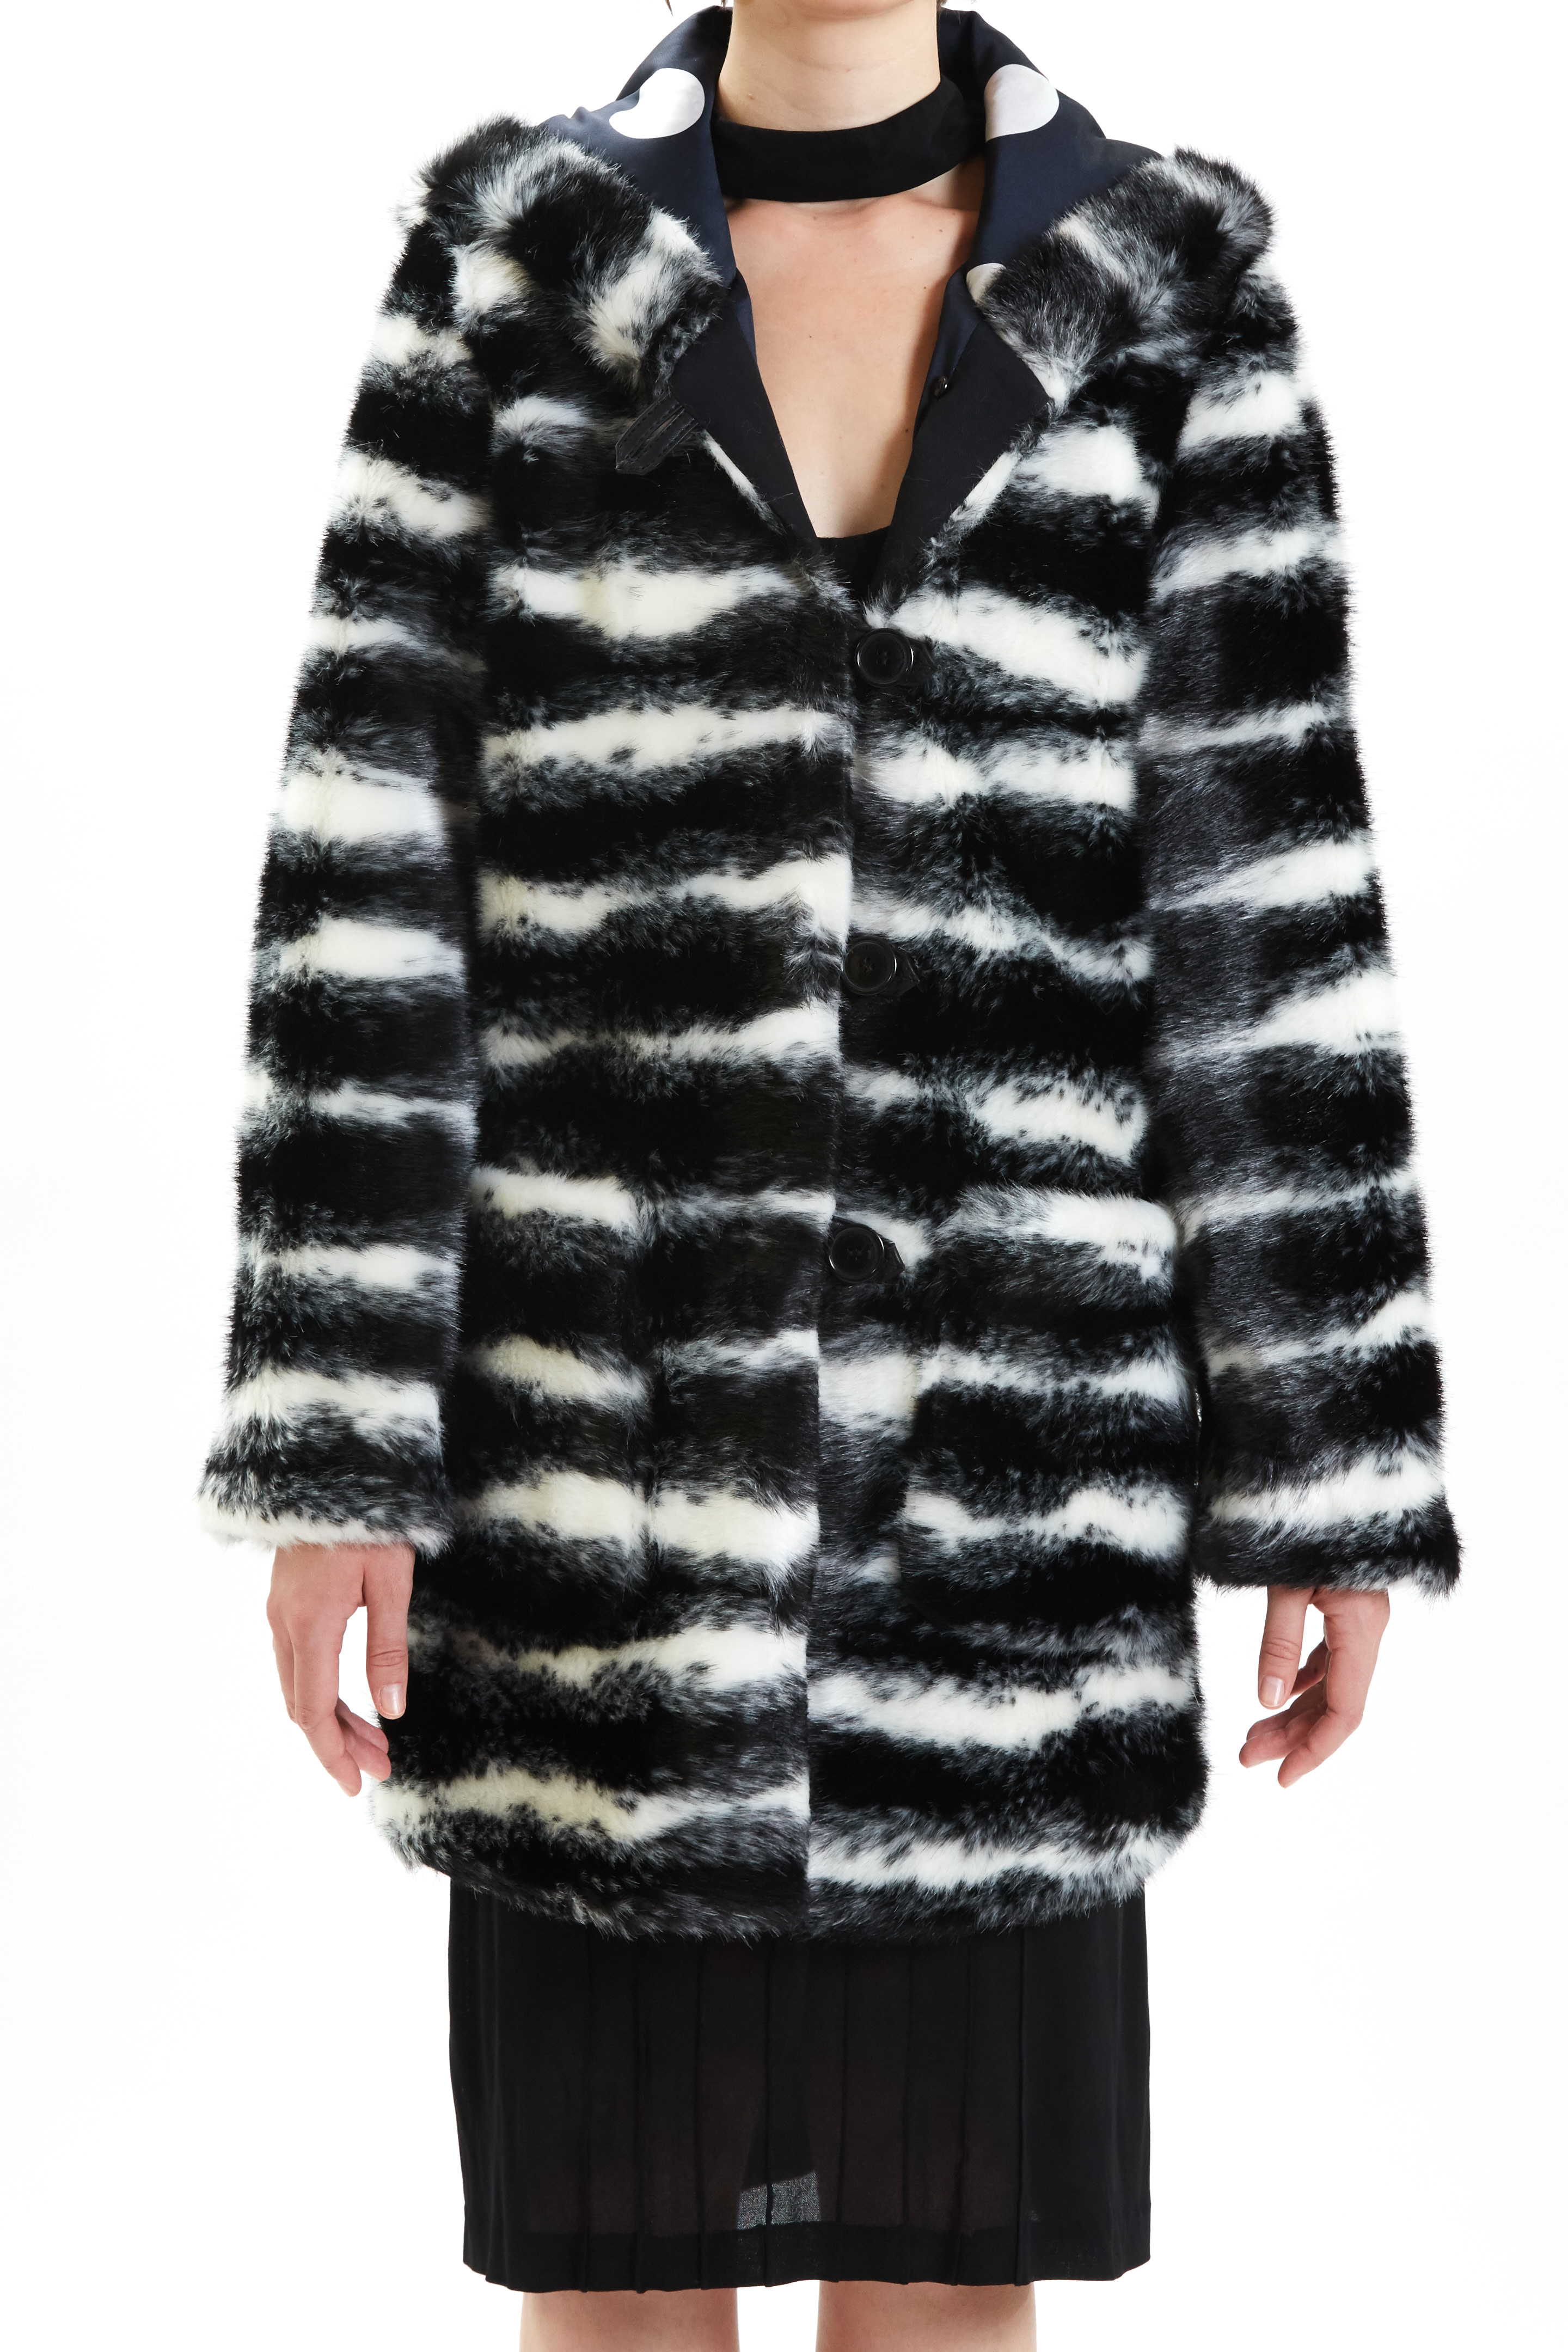 Valentine - Black Cross Mink by Maison Atia on curated-crowd.com